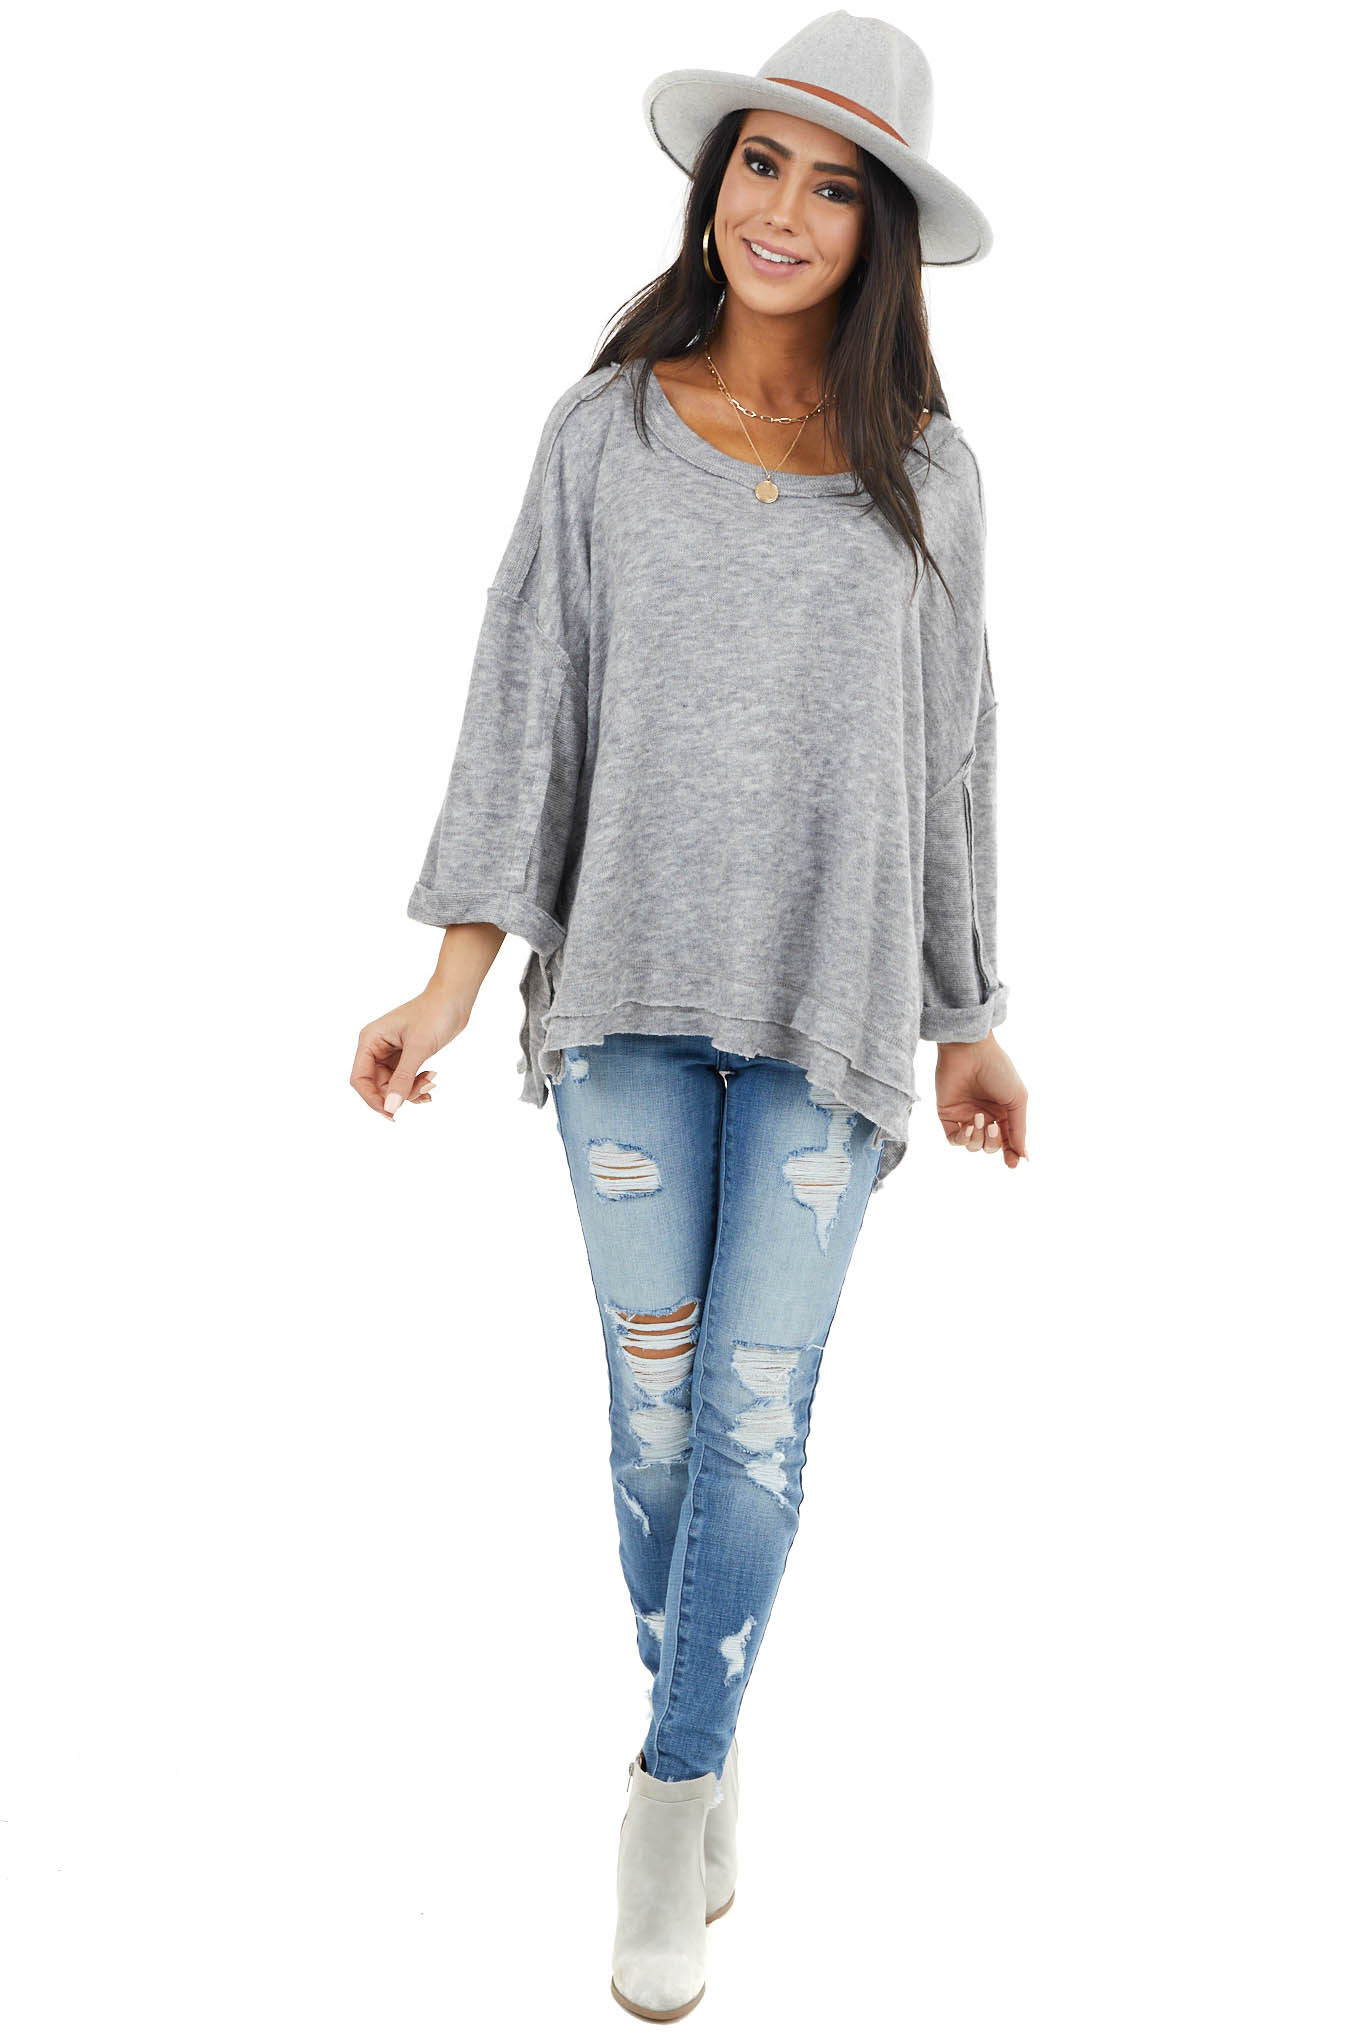 Heather Grey Loose Fit Bell Sleeve Top with Raw Edge Details